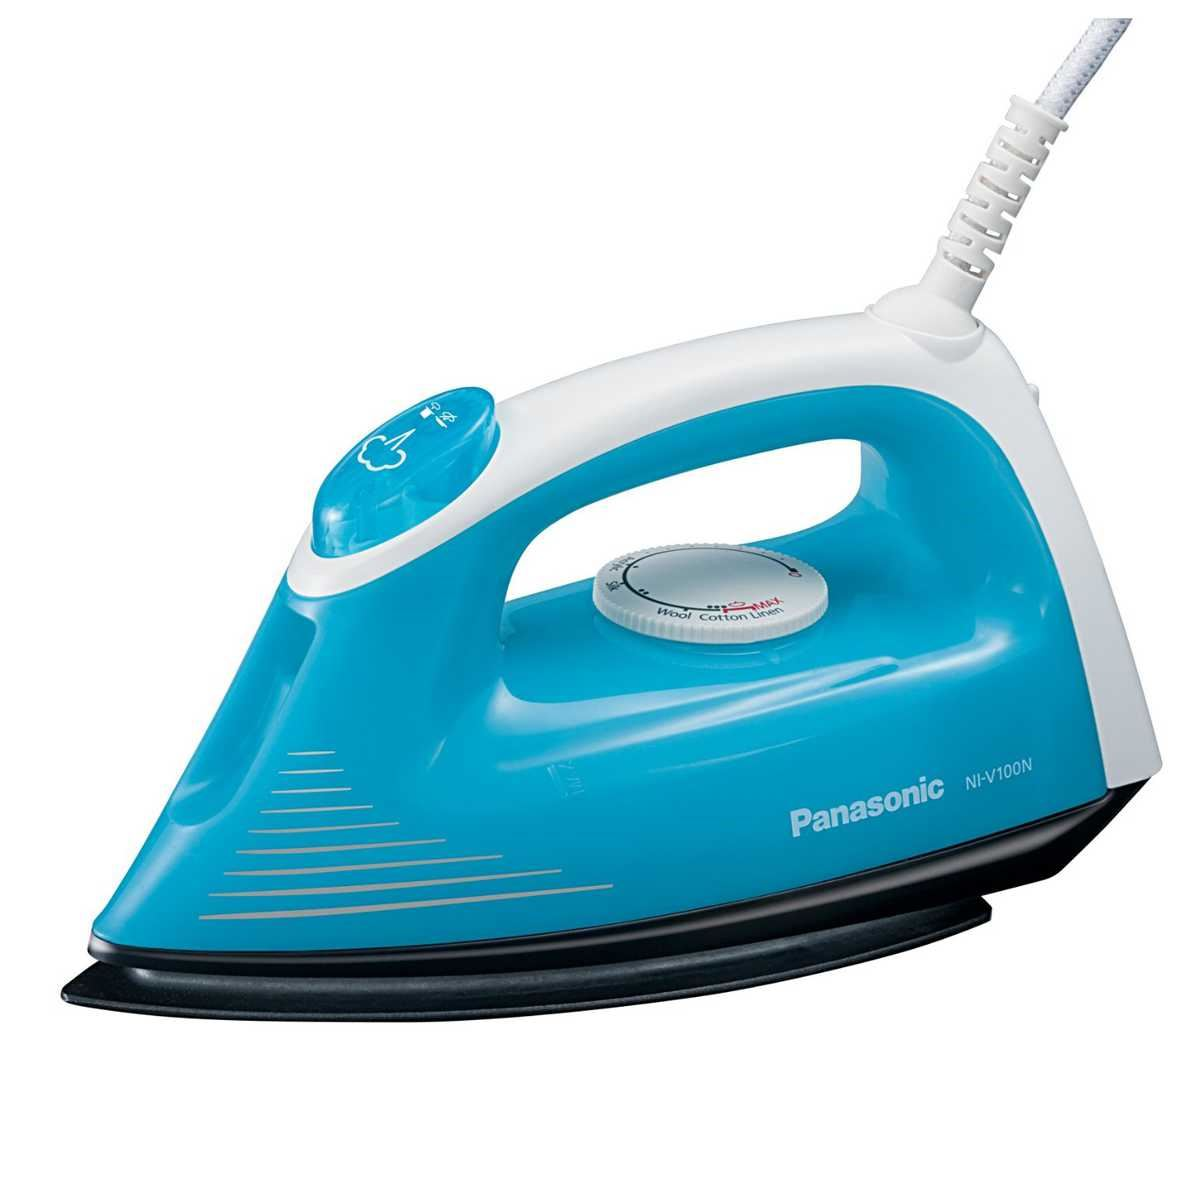 Picture of Panasonic Steam Iron NI-V100N